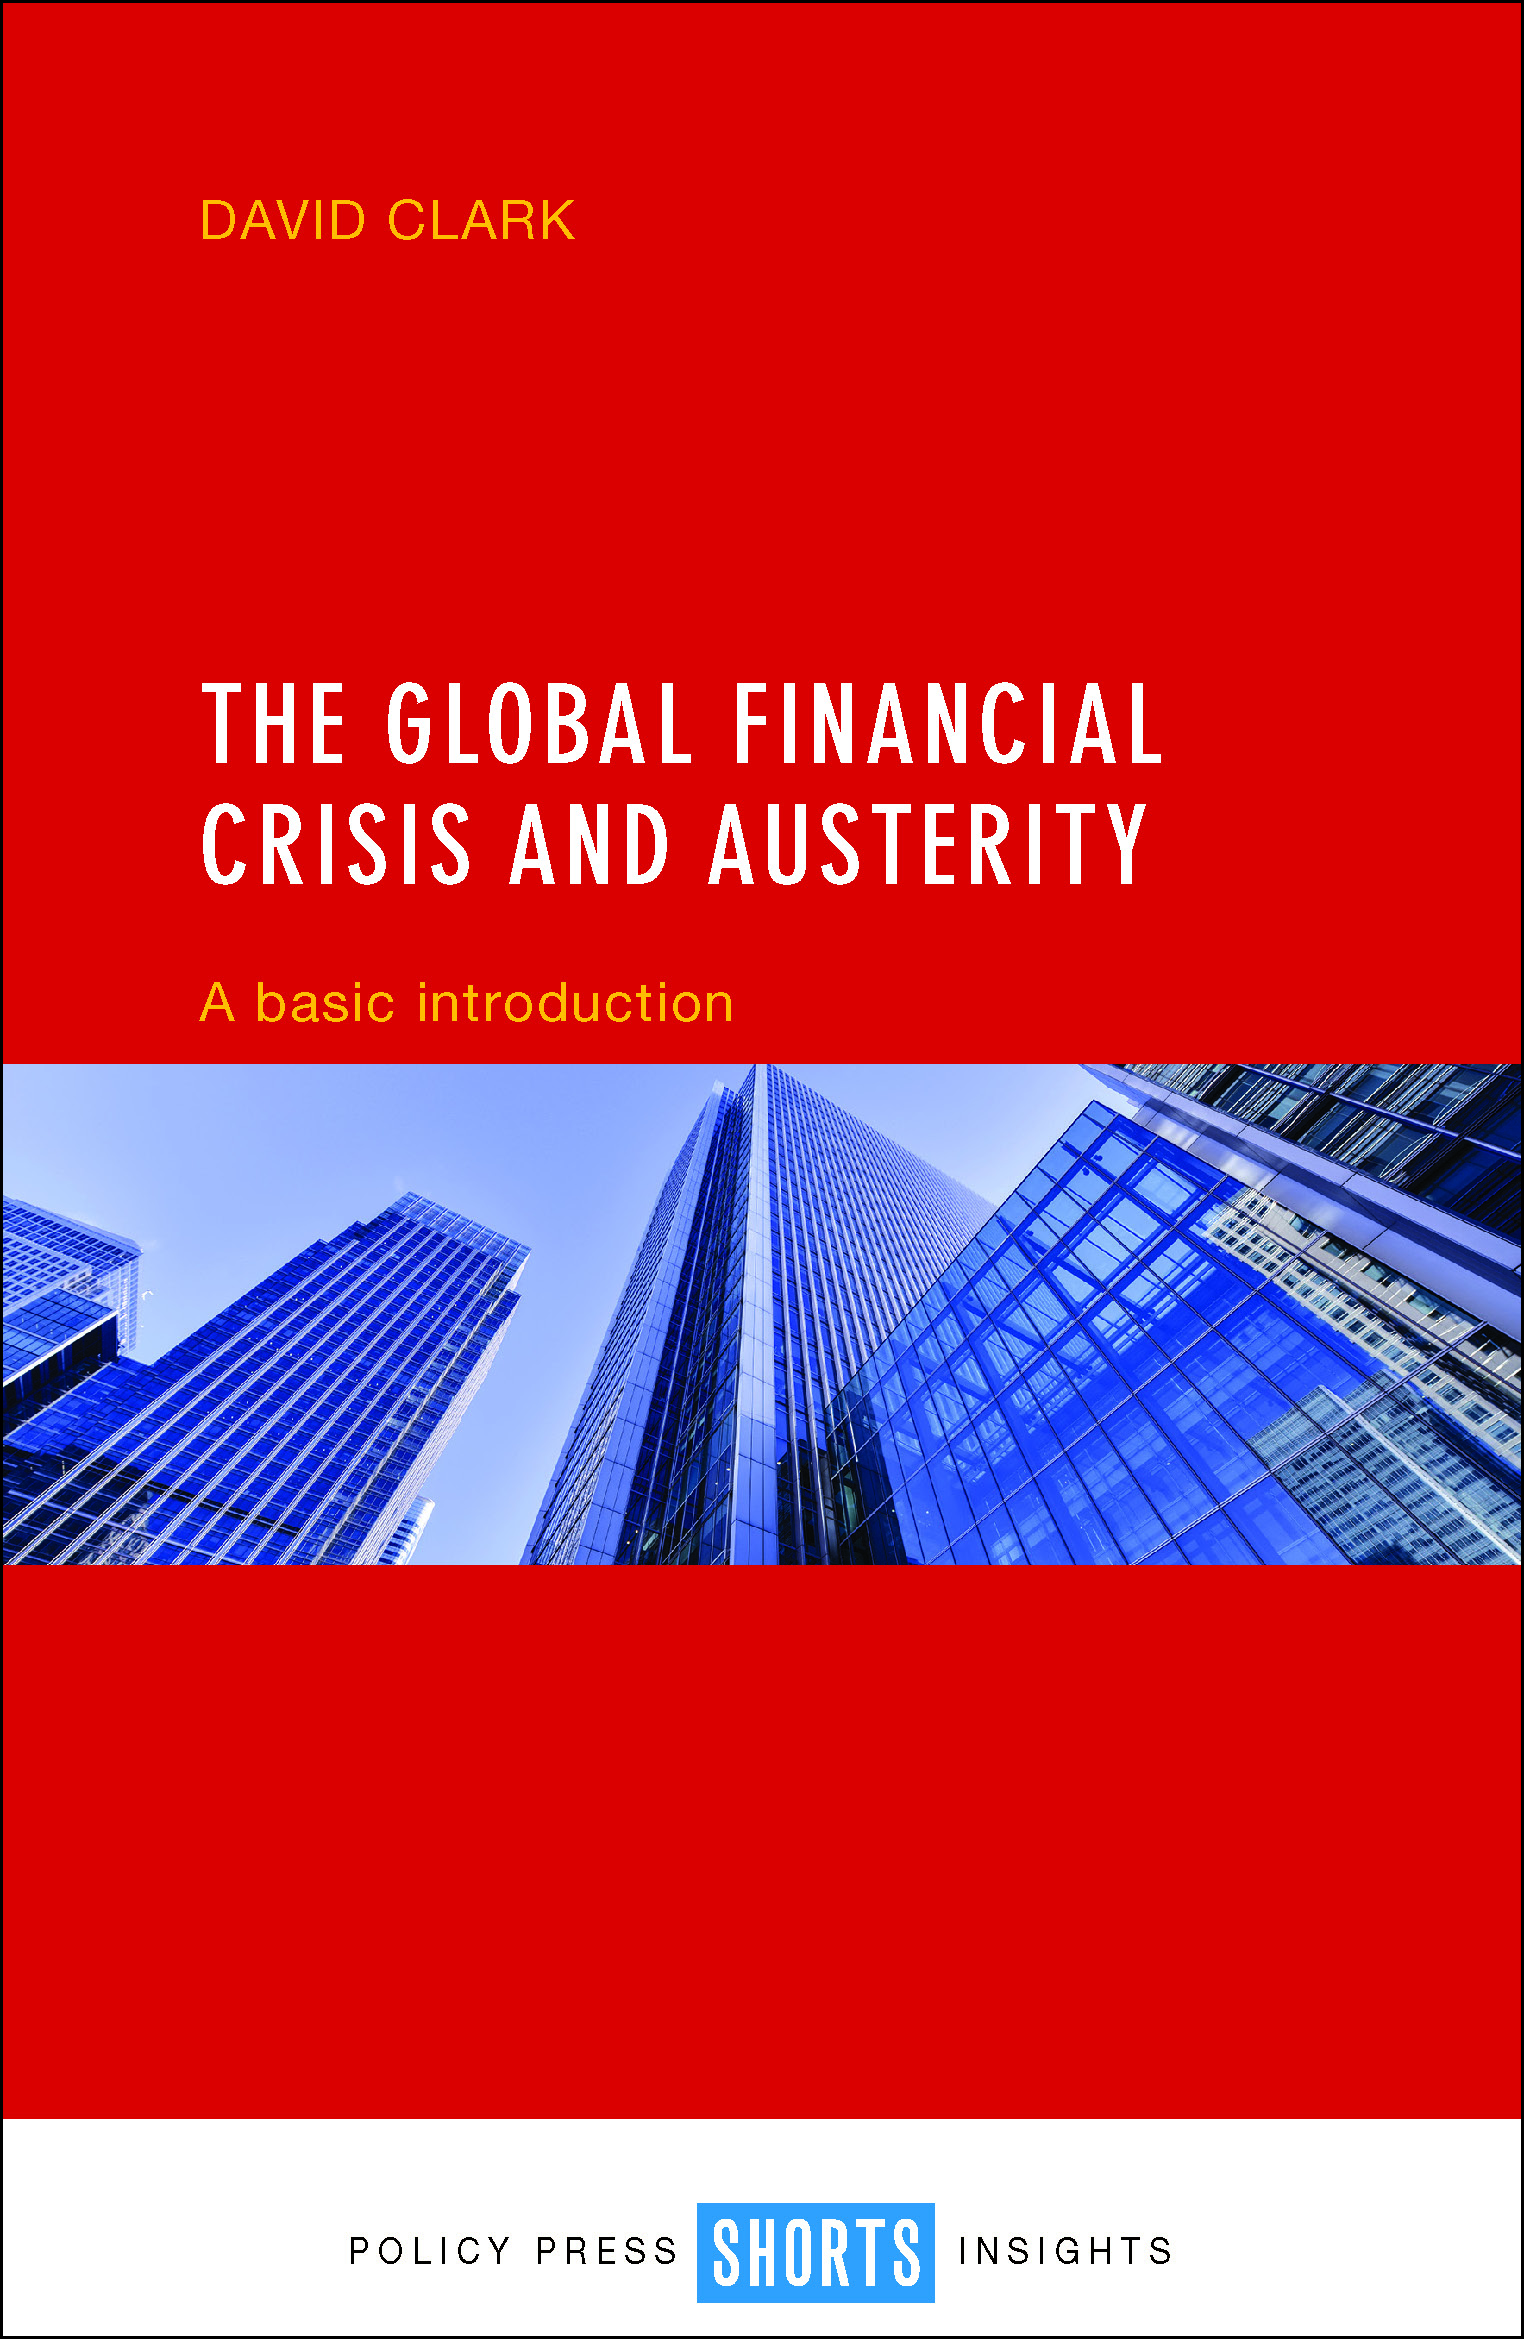 harvard thesis on financial crisis Bibliography of the global financial/economic crisis 37th edition, september 2017 compiled by thomas bourke all works are available from the eui library full details.